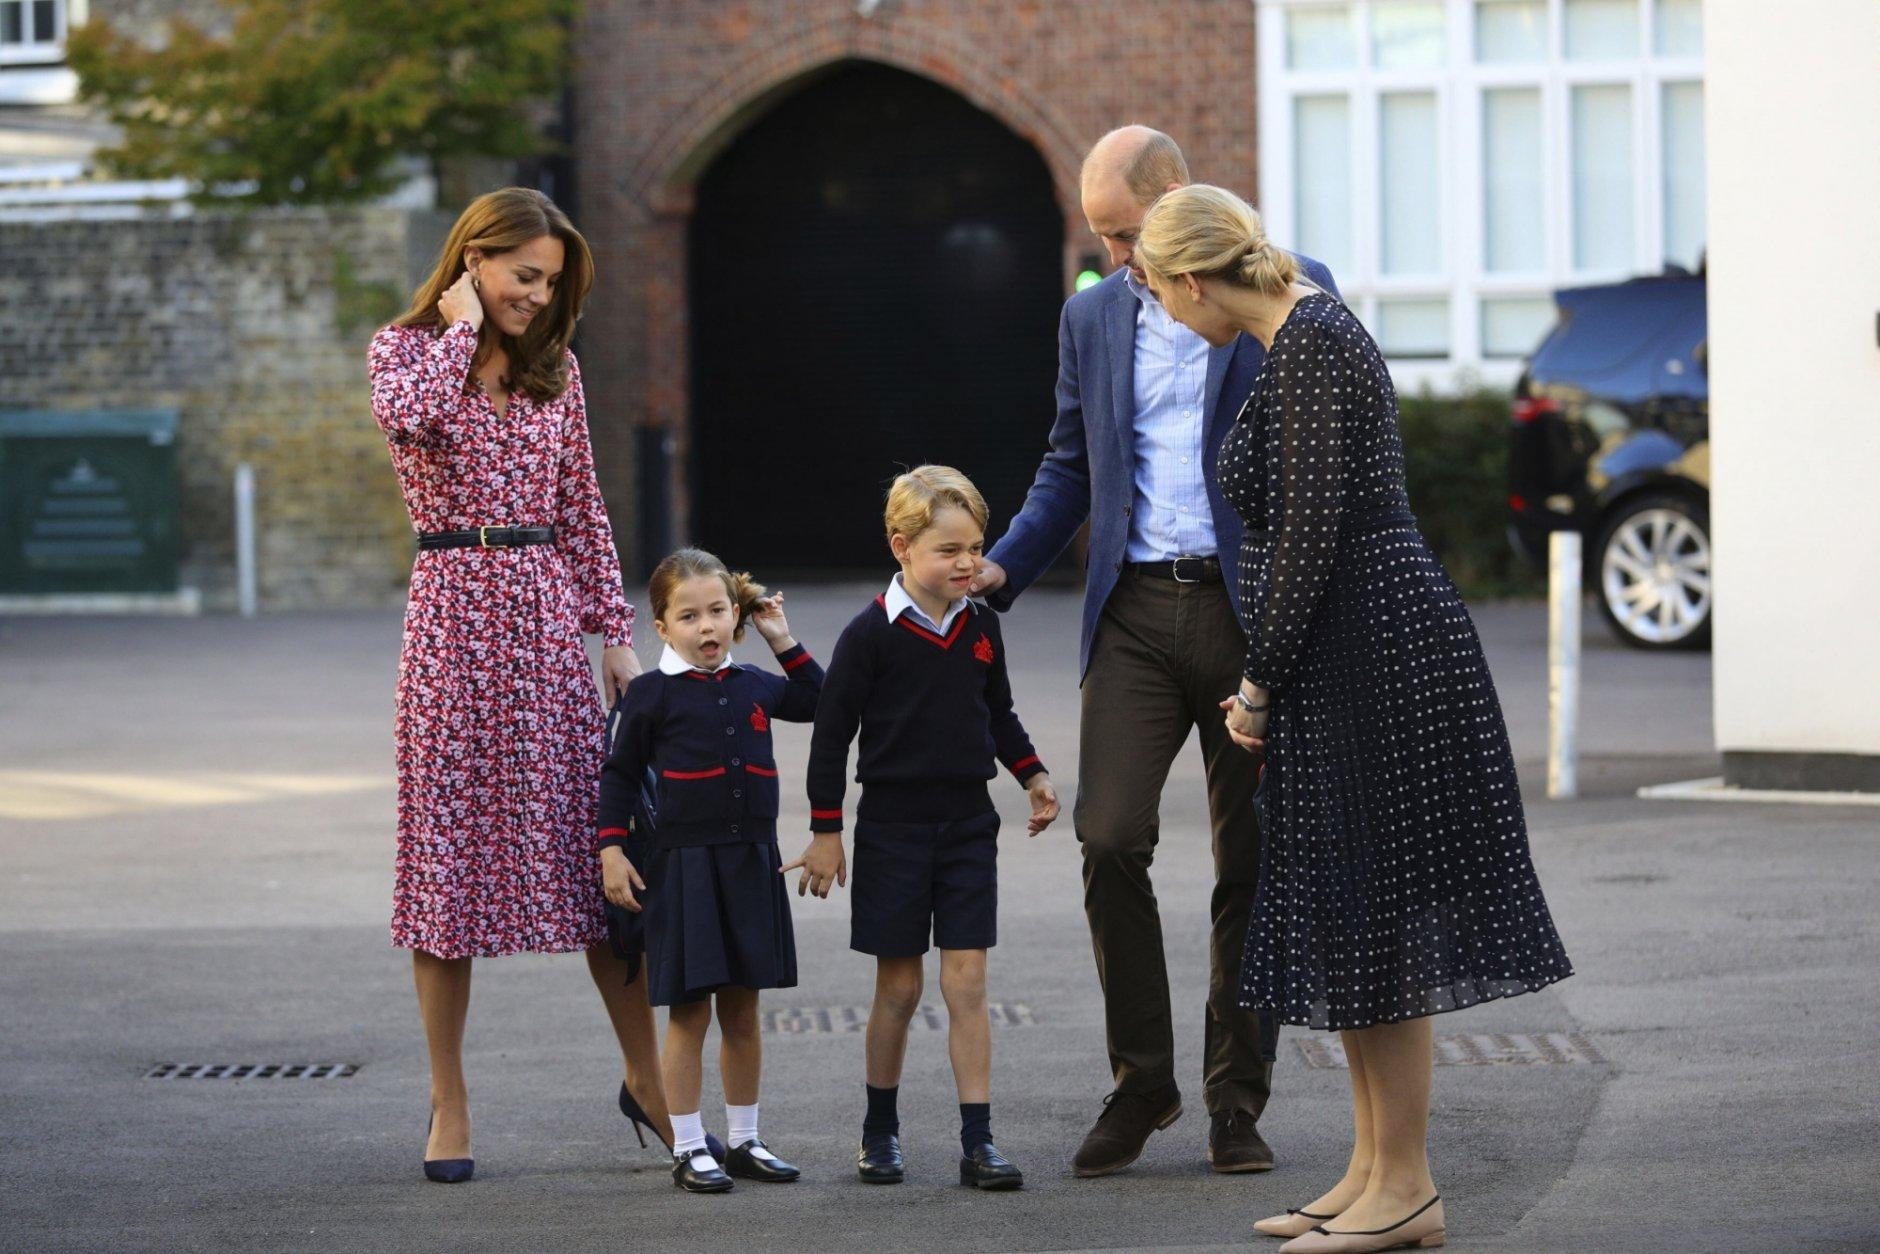 Helen Haslem, right, head of the lower school greets Britain's Princess Charlotte, second left, for her first day of school at Thomas's Battersea in London, with her brother Prince George and their parents Prince William and Kate, Duchess of Cambridge, Thursday Sept. 5, 2019. (Aaron Chown/Pool via AP)